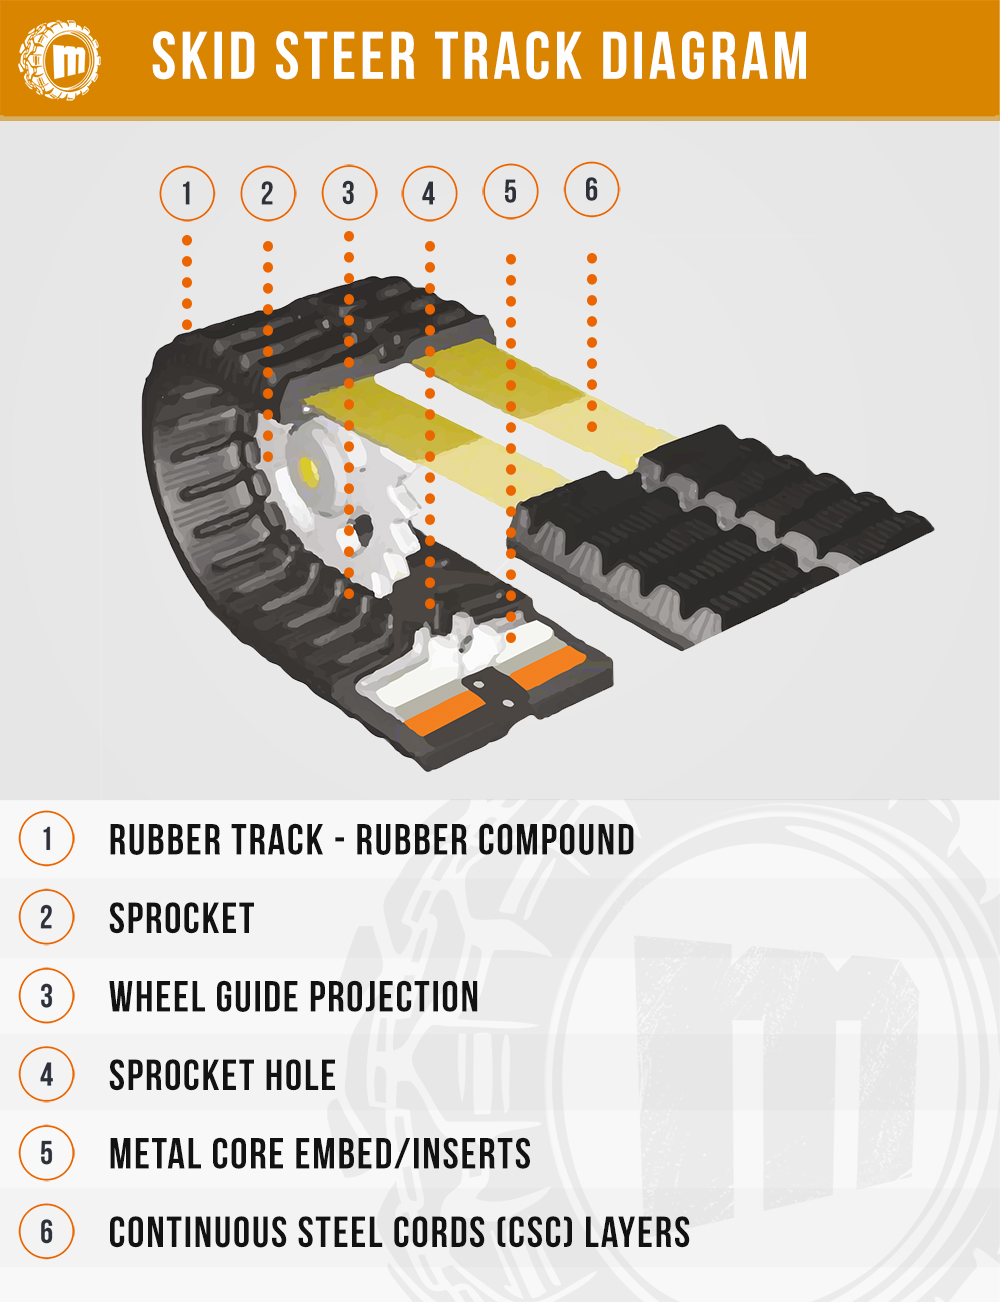 Skid Steer Tracks Guide - Diagram